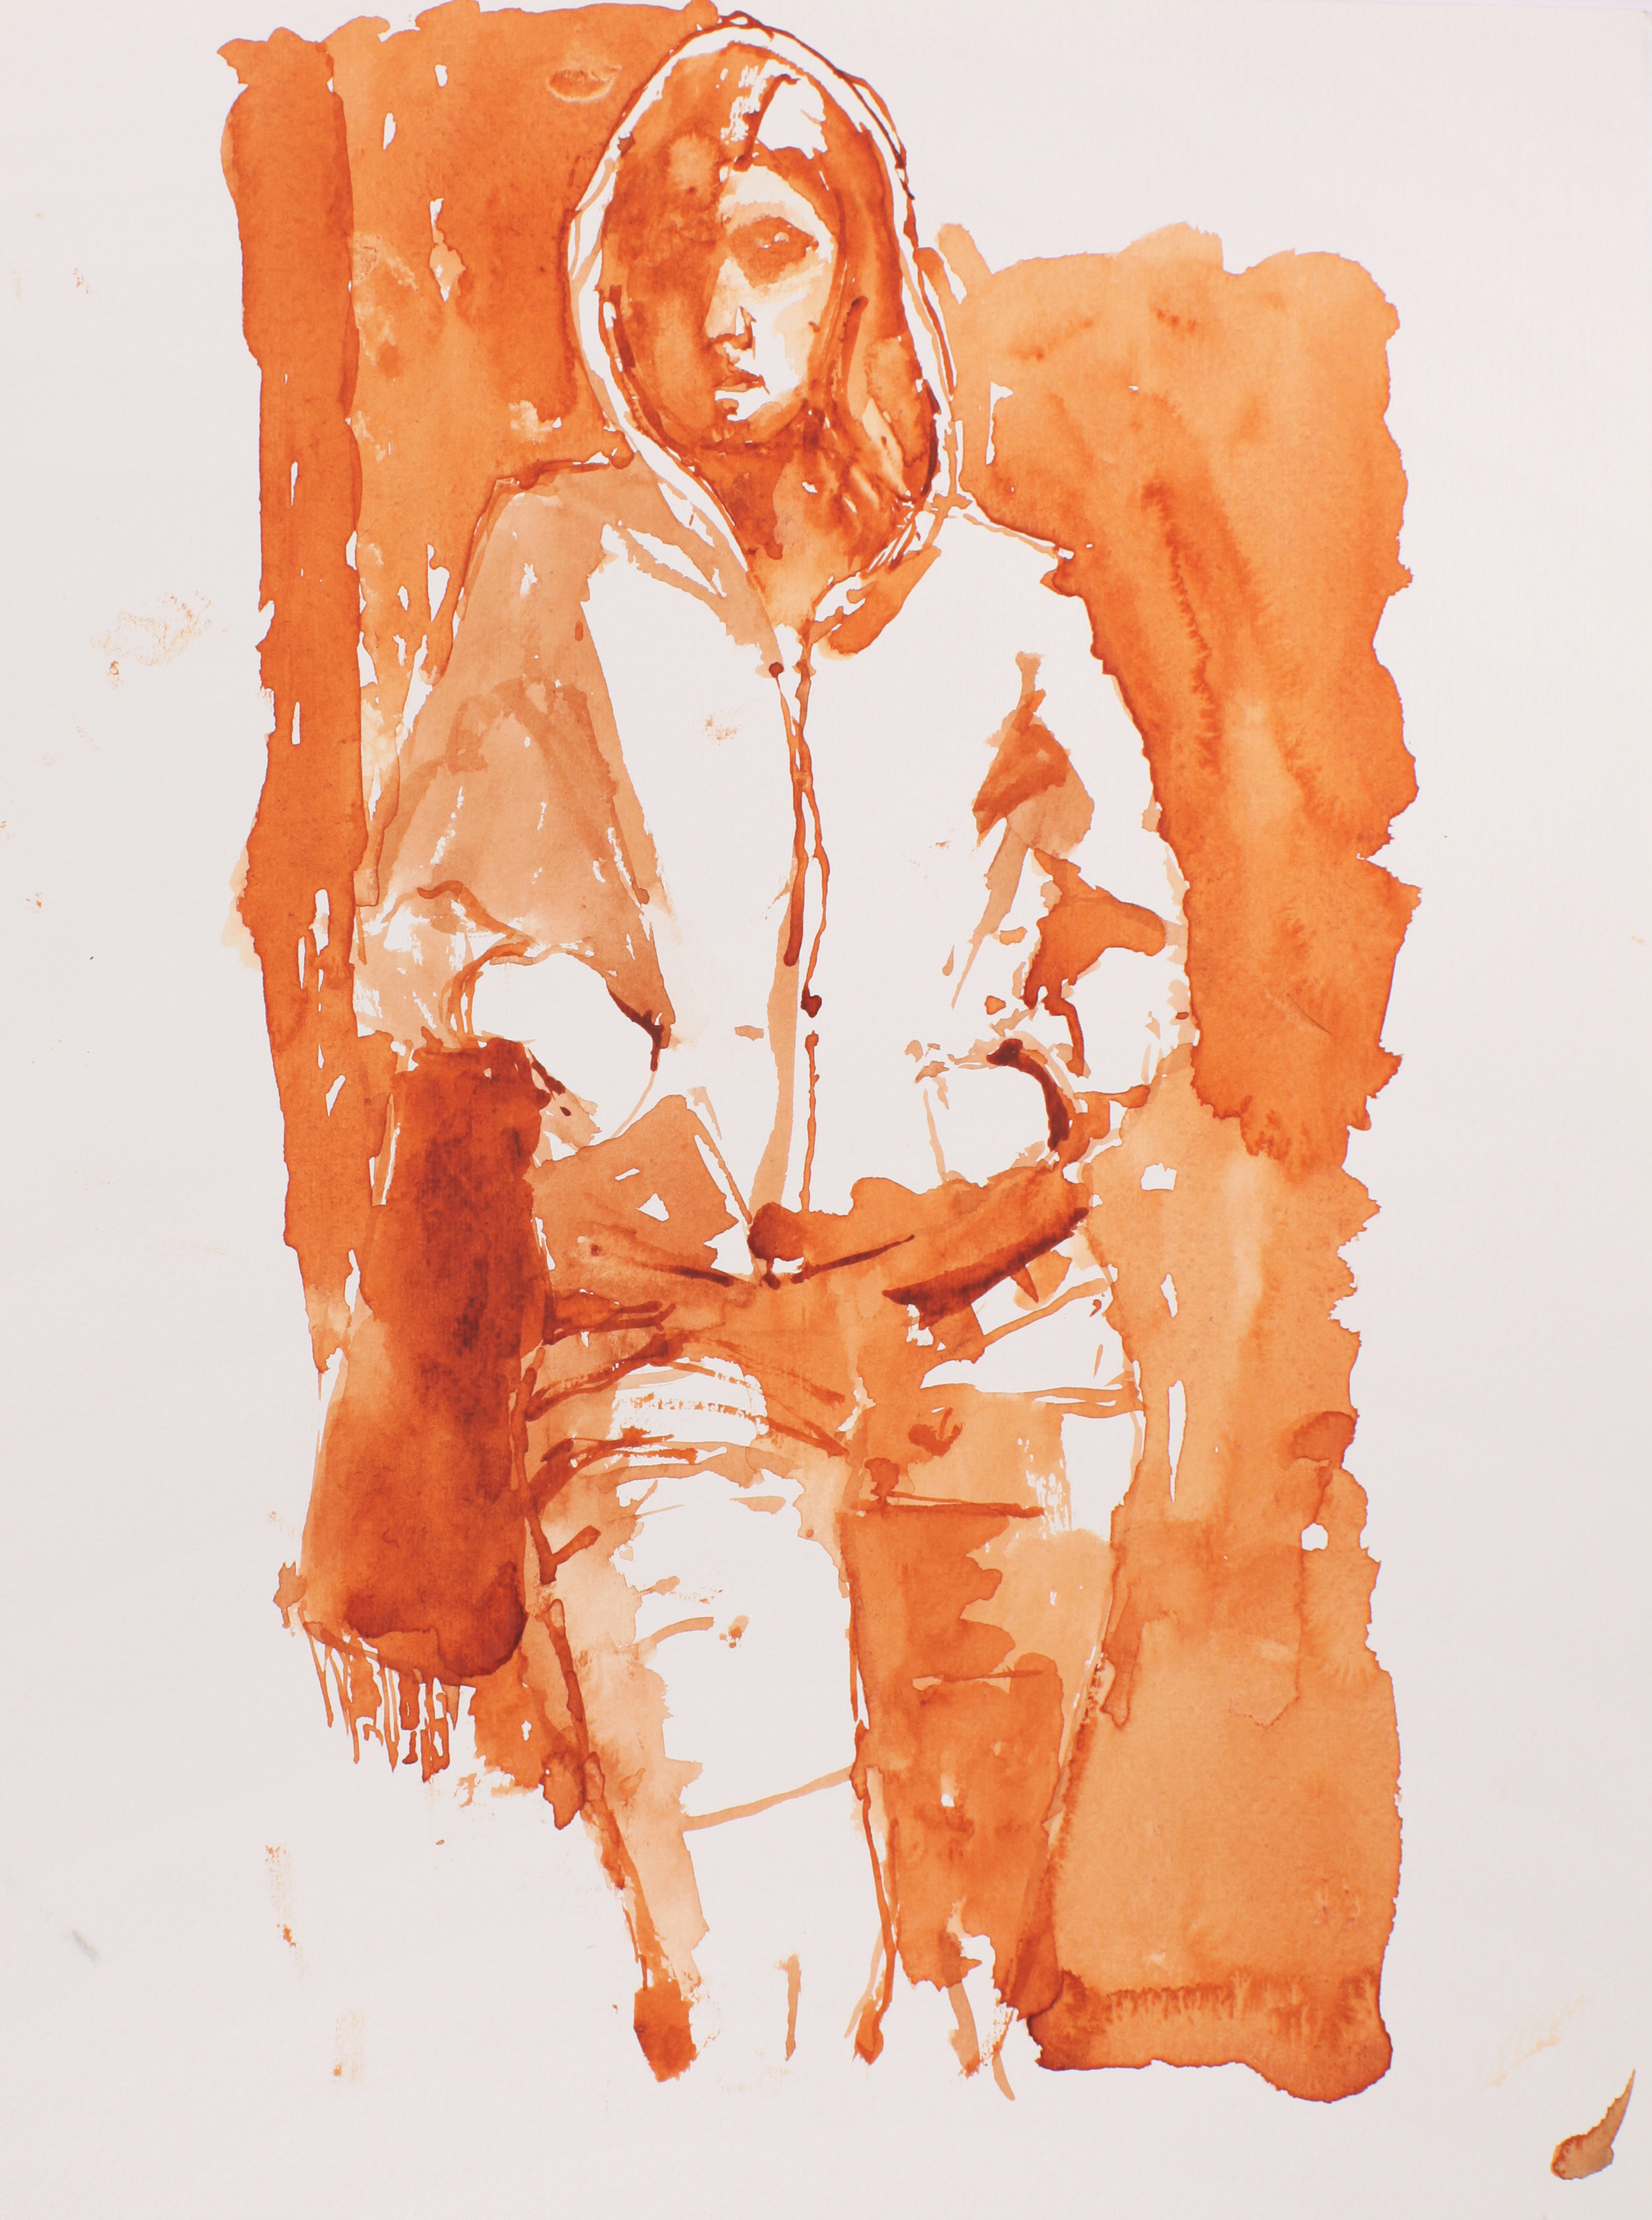 2004_Woman_with_Hooded_Sweater_watercolour_and_red_conte_on_paper_15x11in_WPF129.jpg